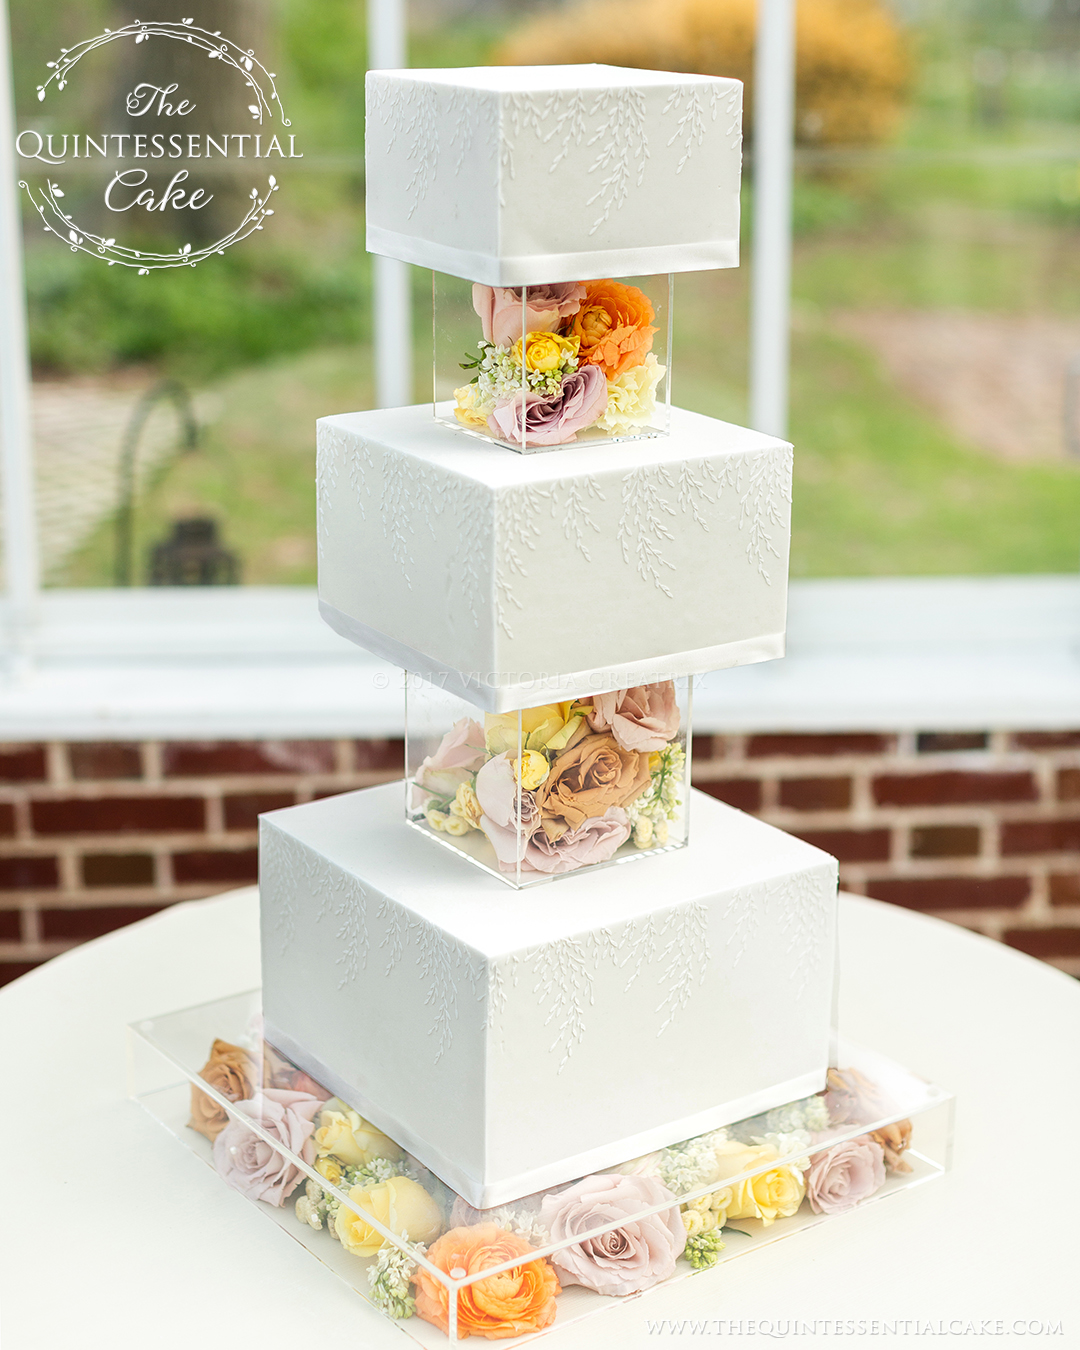 TQC Square Cake with Acrylic Risers